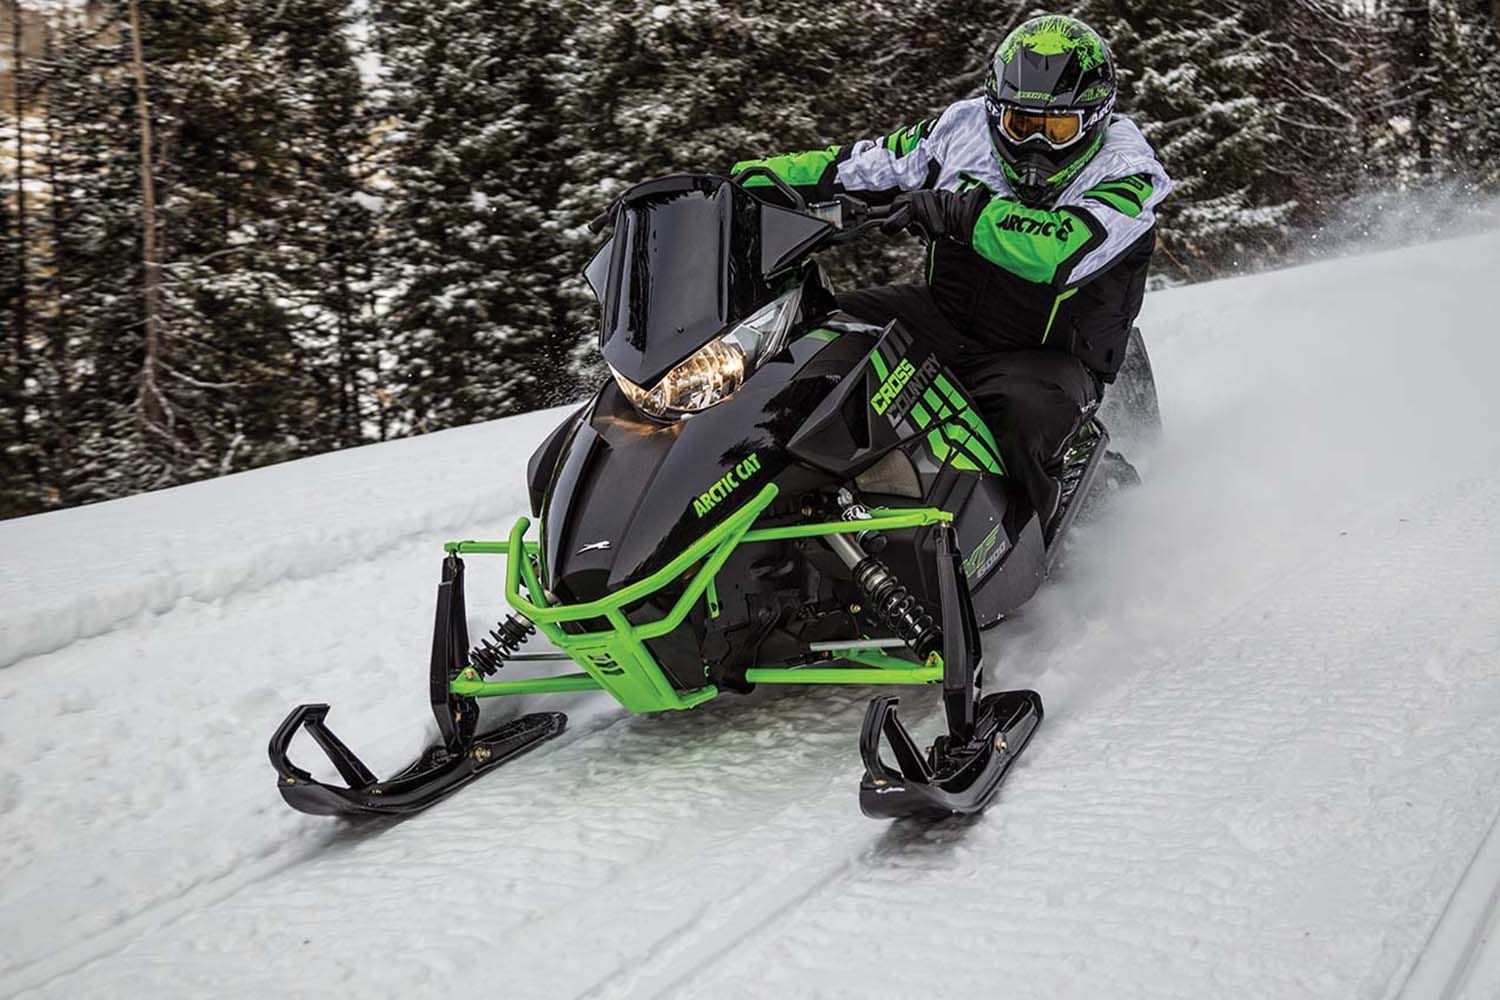 Pin by Chuck Goughnour on Arctic Cat in 2020 (With images